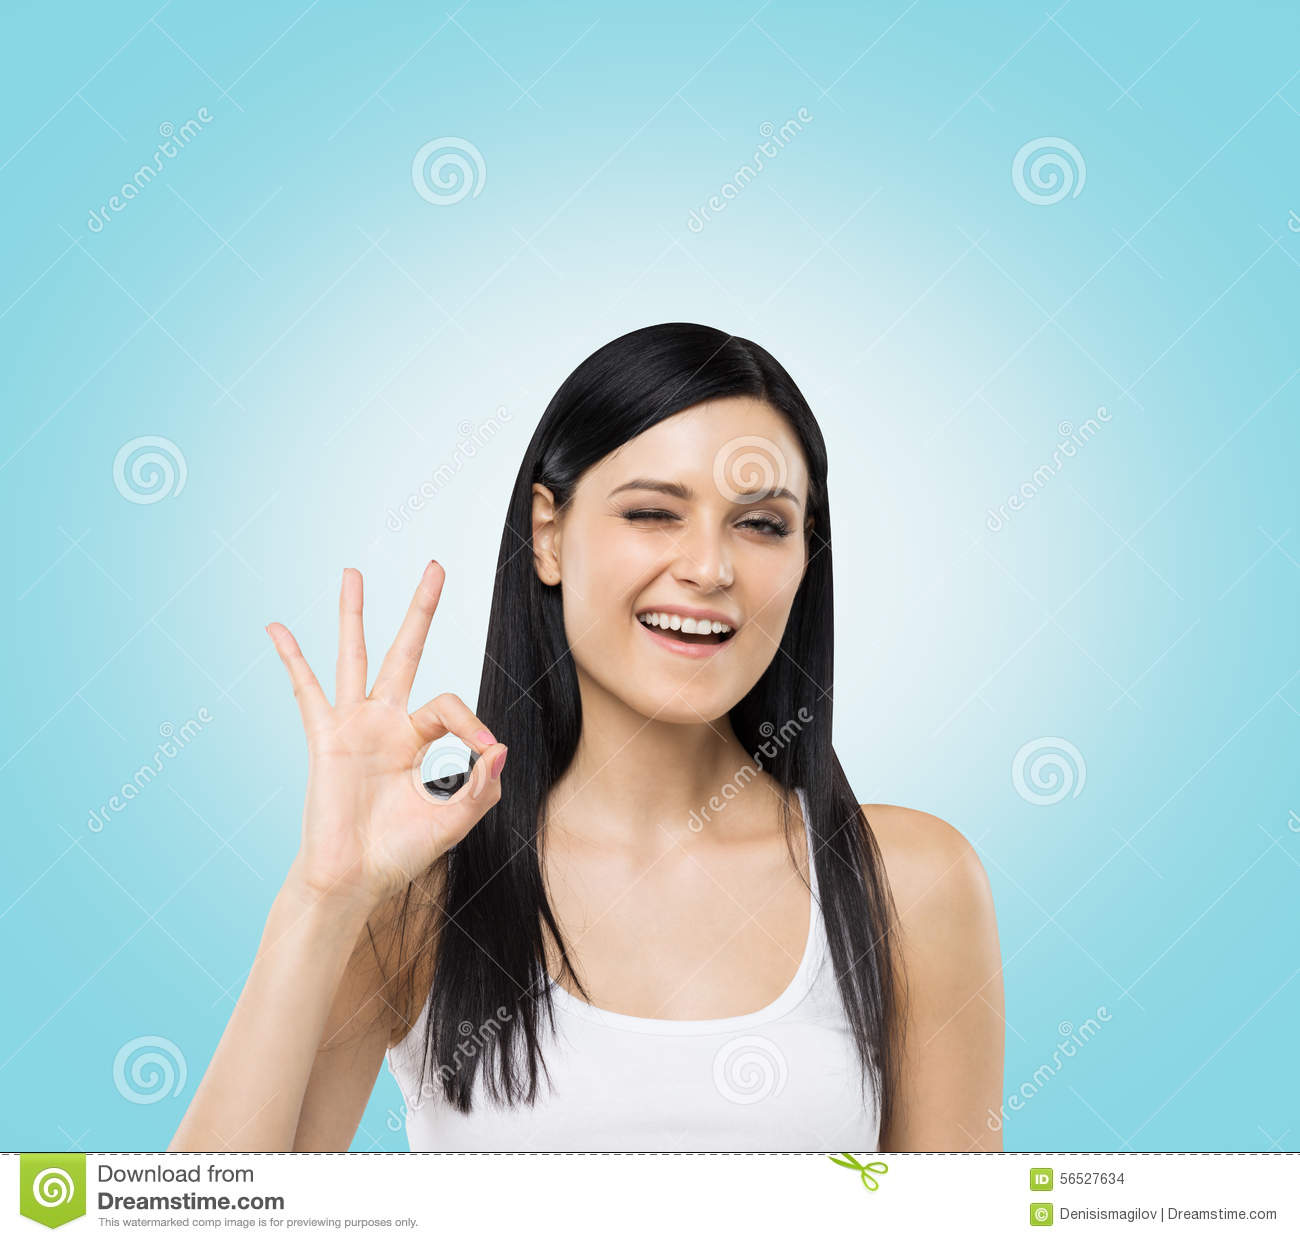 Woman Shows Ok Sign. Blue Background. Stock Photo - Image: 56527634